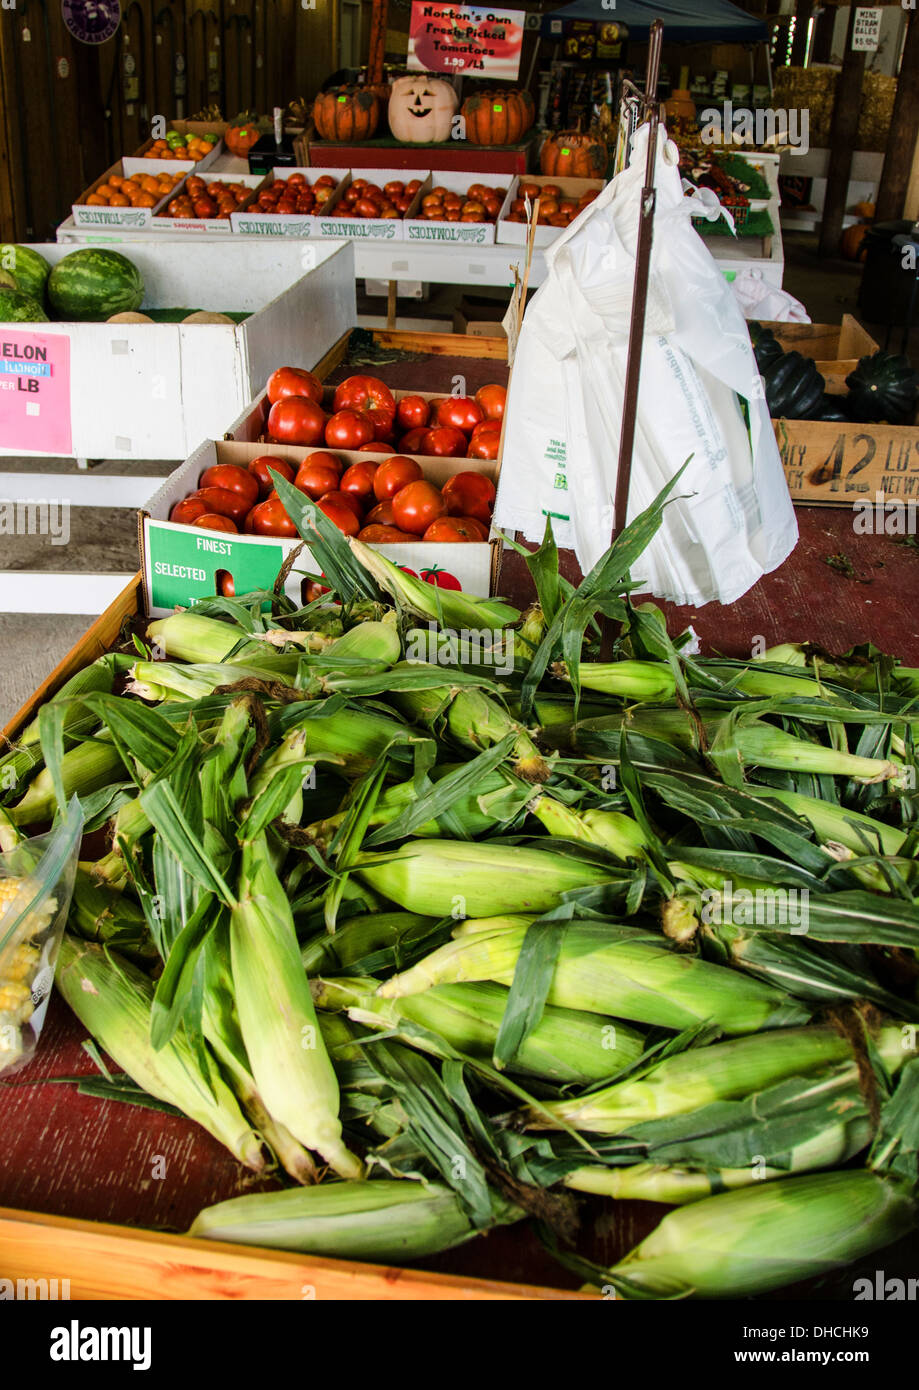 Corn and other produce for sale at Norton Farm near St. Charles, Illinois, a town along the Lincoln Highway - Stock Image